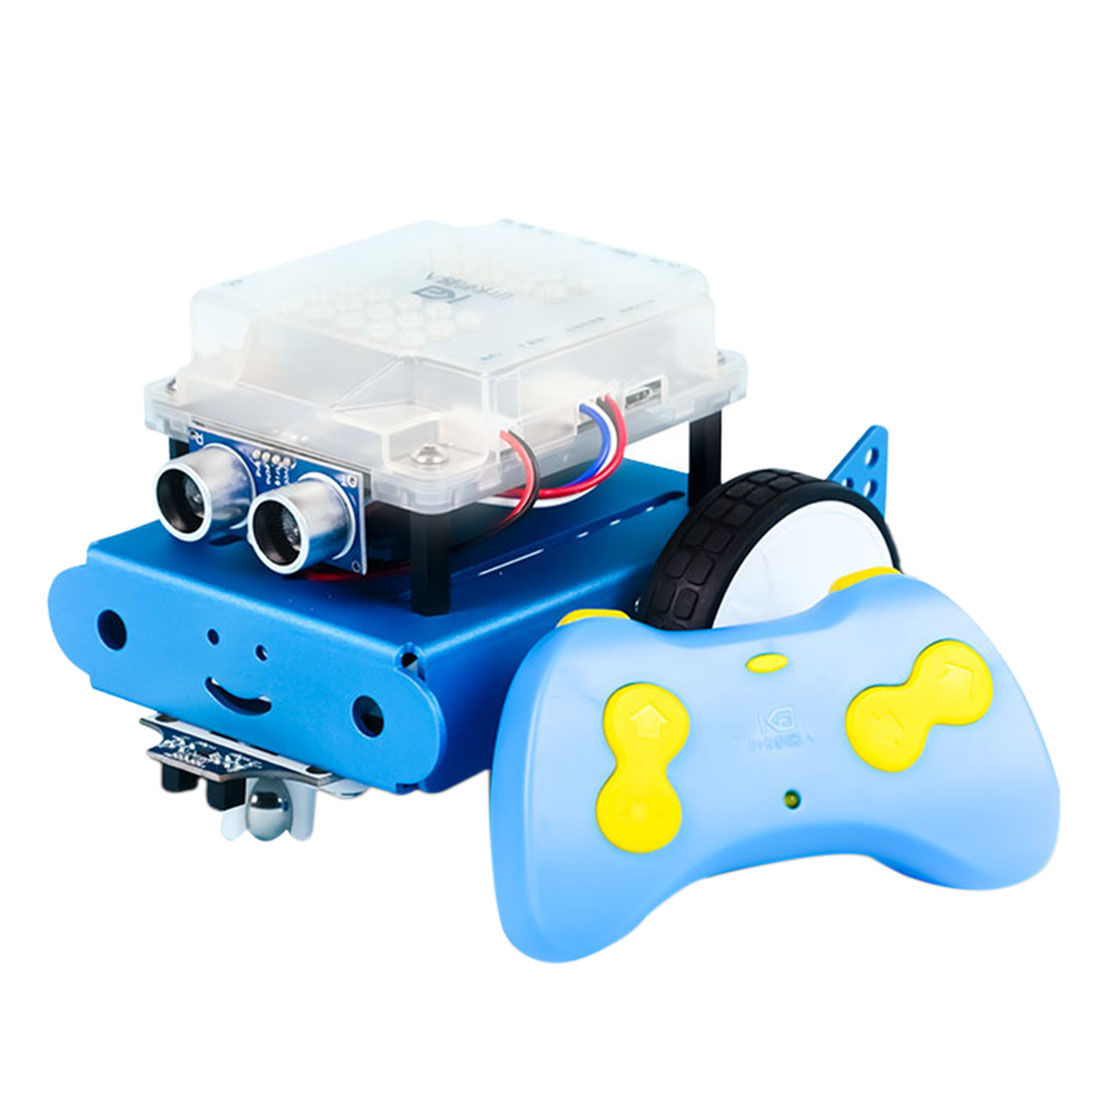 DIY Smart Robot Car Kit APP Control Programming Obstacle Avoidance Line-Tracking Ultrasonic Sensor - BlueDIY Smart Robot Car Kit APP Control Programming Obstacle Avoidance Line-Tracking Ultrasonic Sensor - Blue